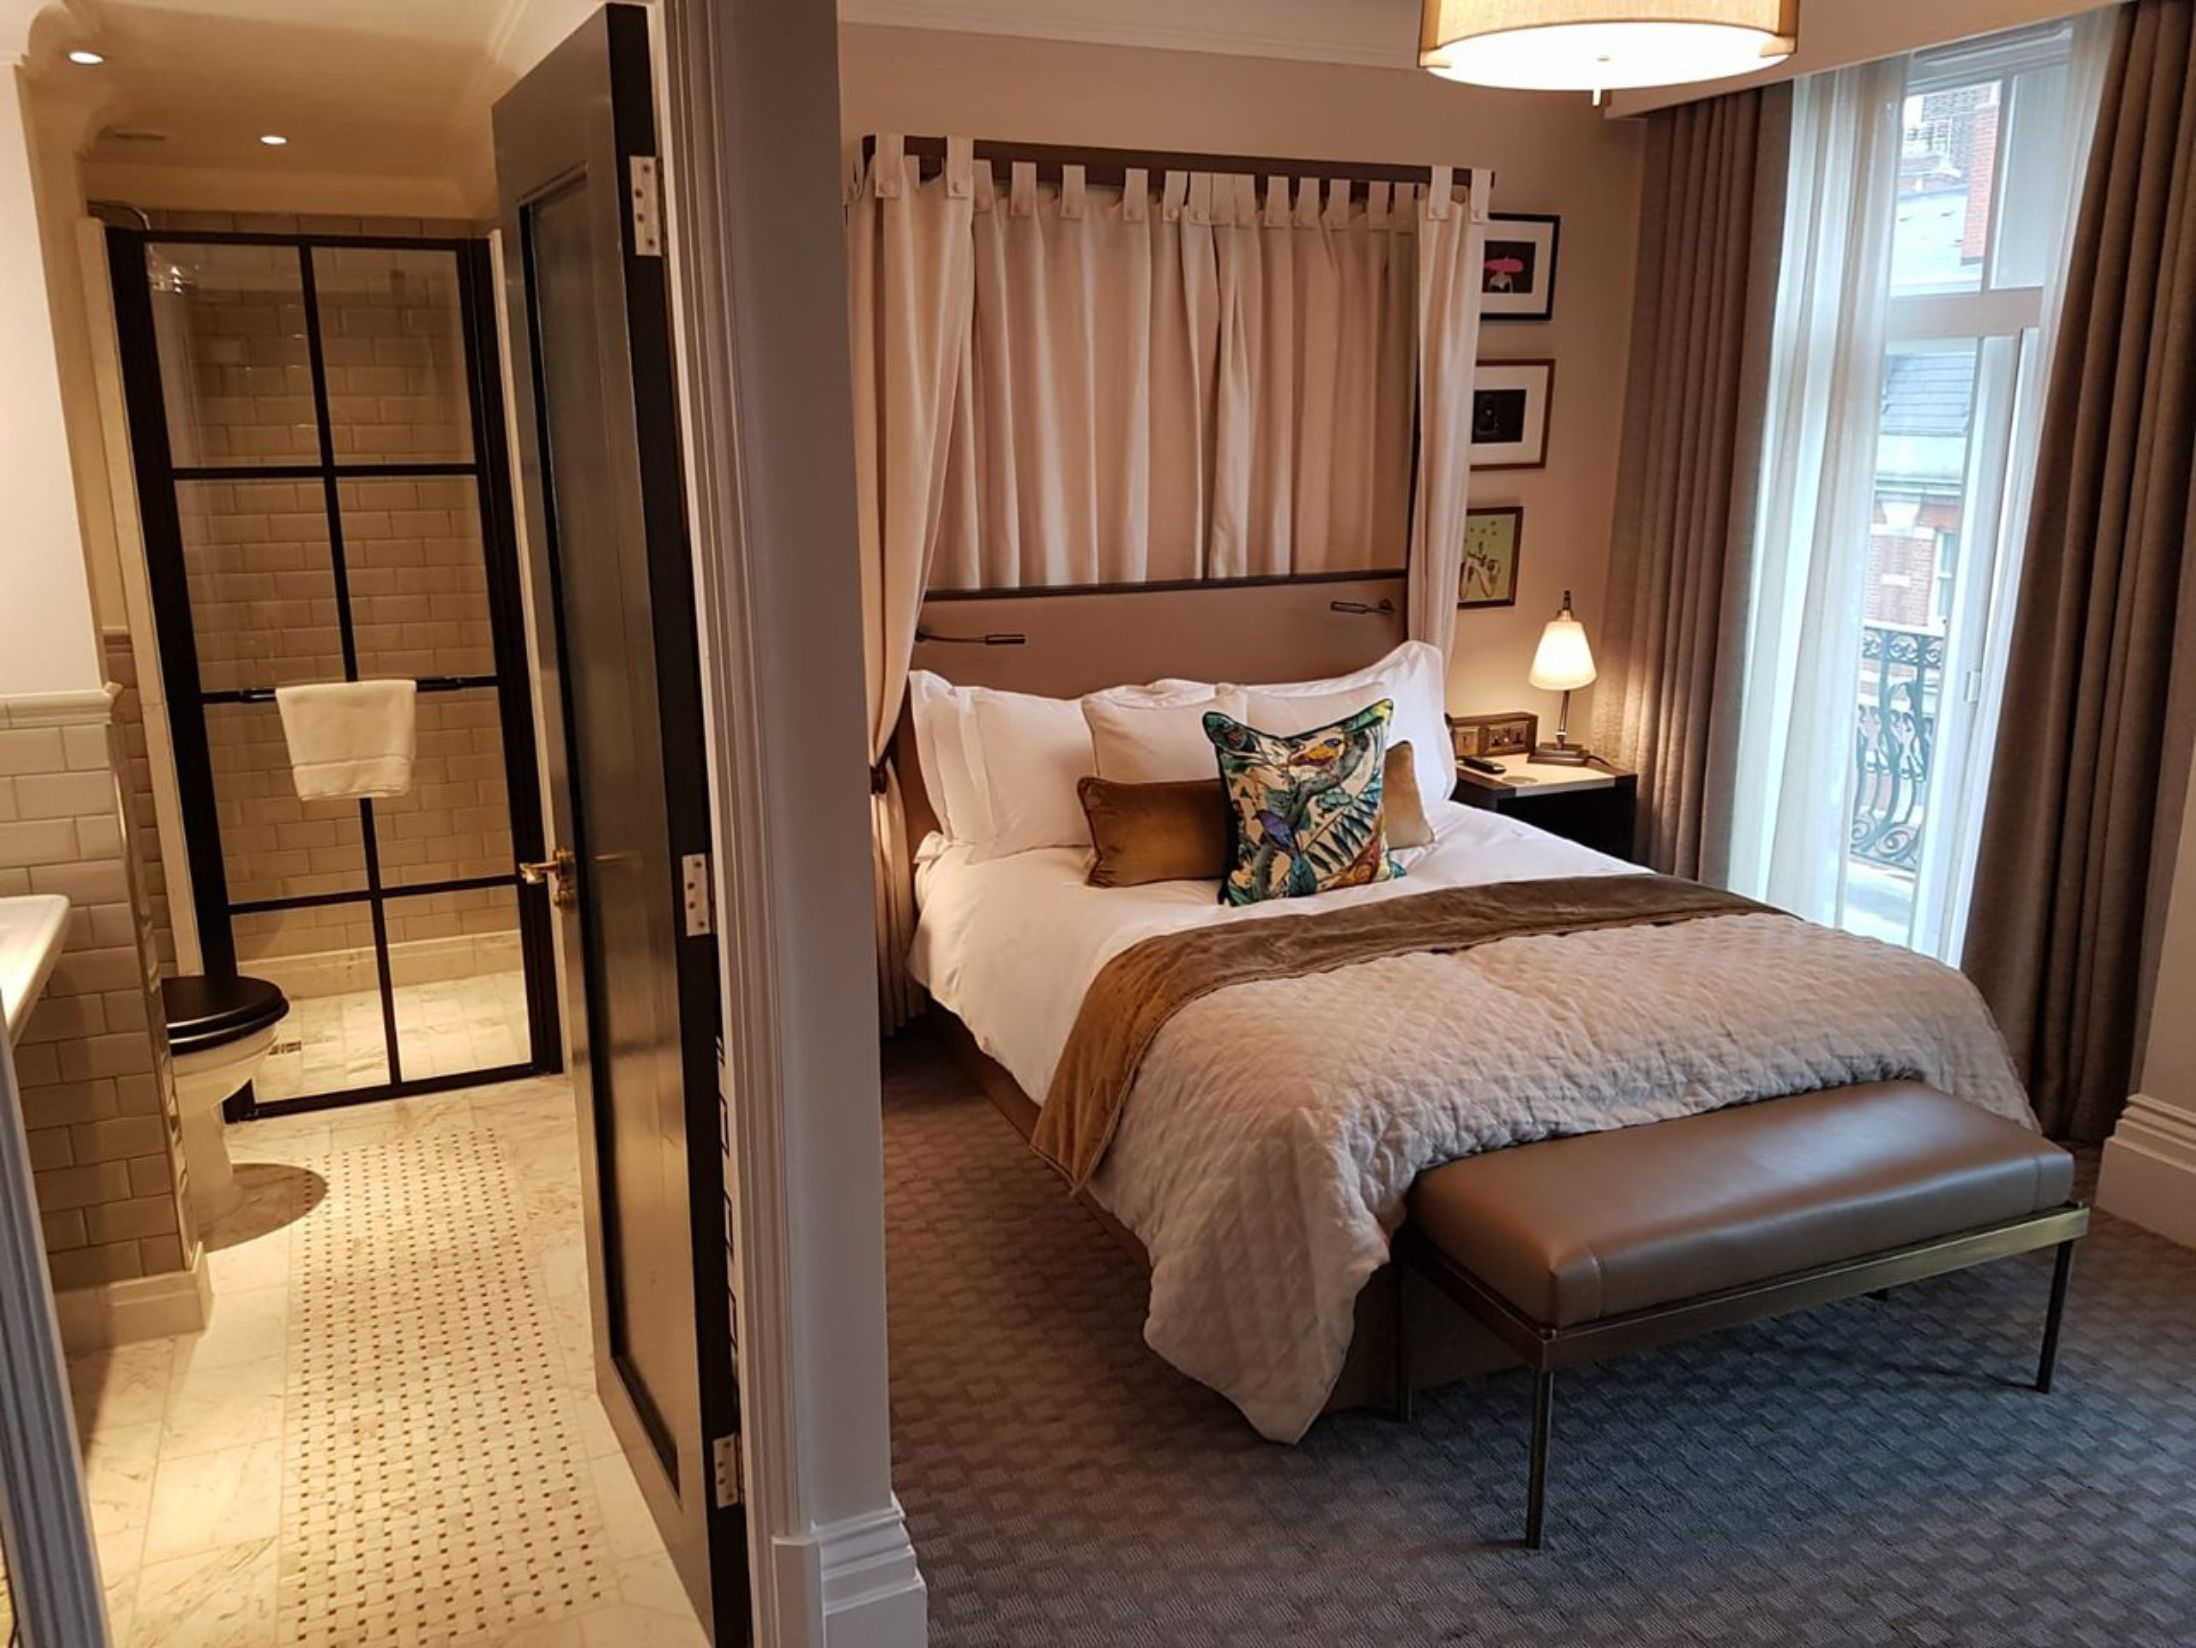 Best Hotels in Central London - Kimpton Fitzroy